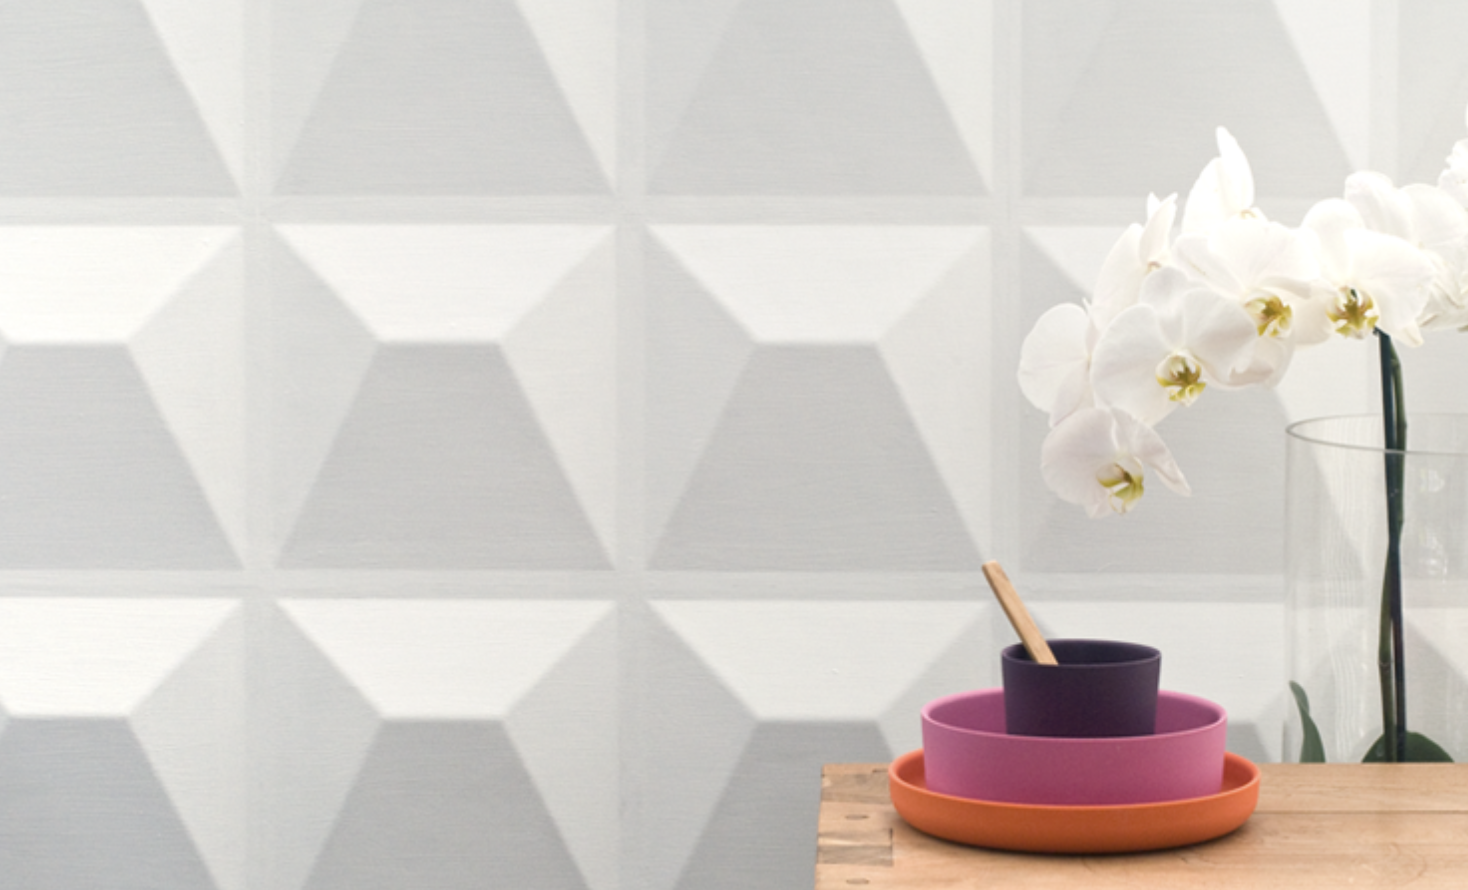 Bamboo fibre wall panels from 3dwalldecor, based in the Netherlands